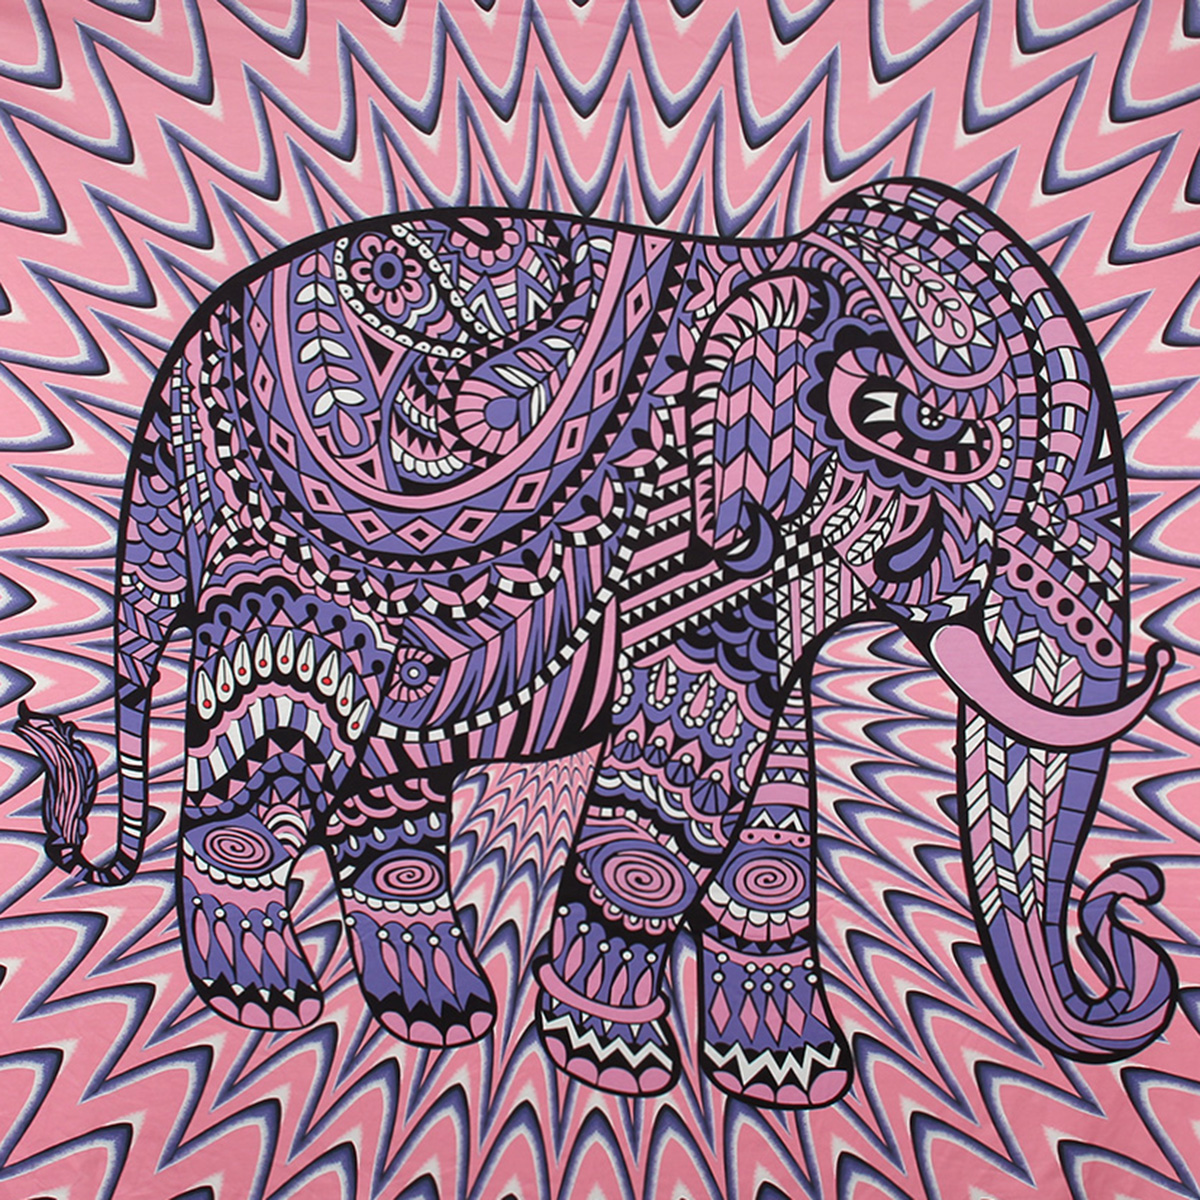 Elephant Mandala Tapestry Throw Towel Hippie Tapestry Floral Printed Home Decor Wall Tapestries Bedspread 210*150CM 20